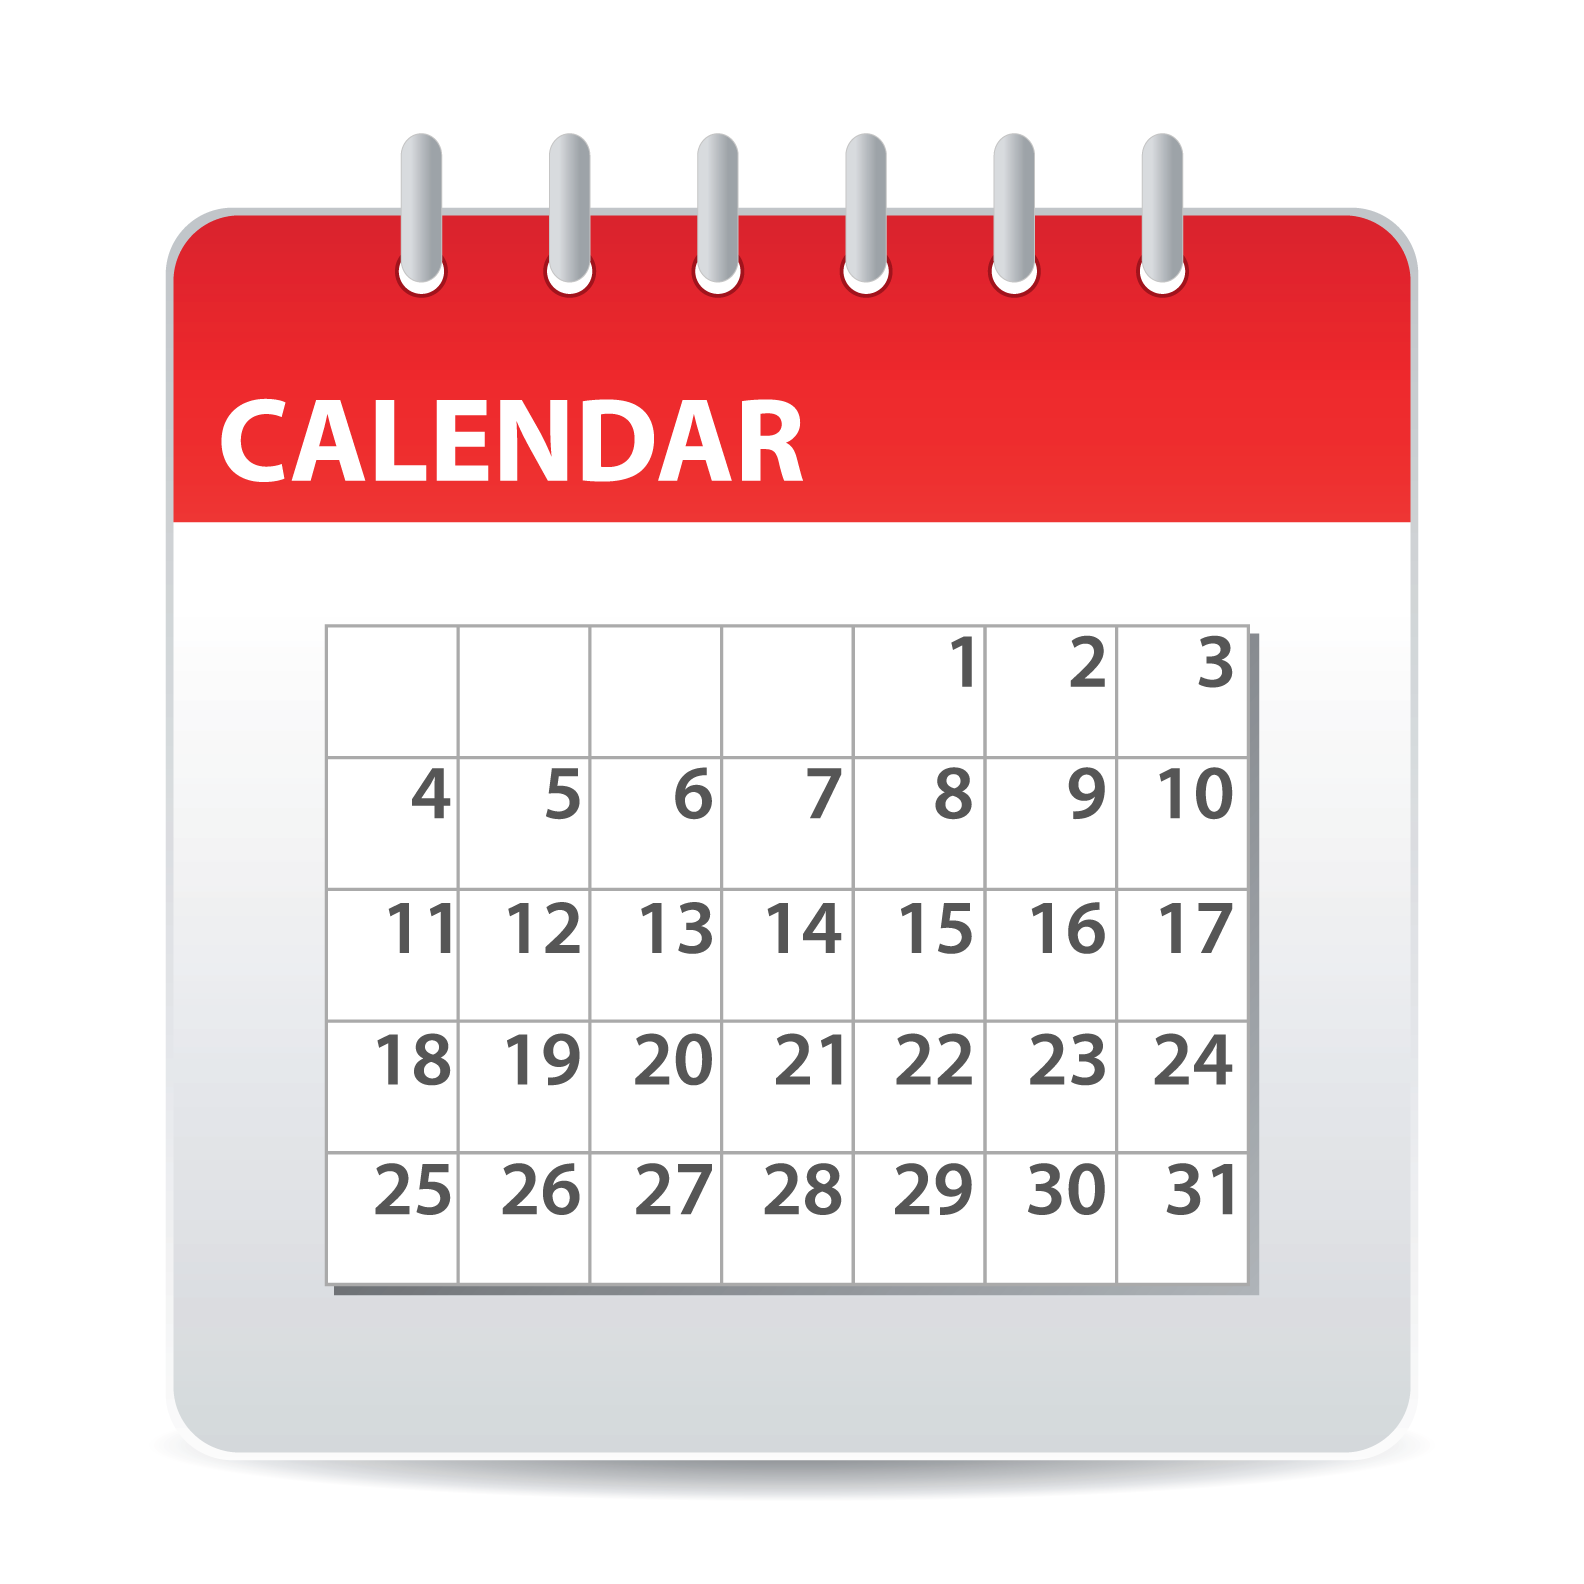 Event calendar png. Download free icons and